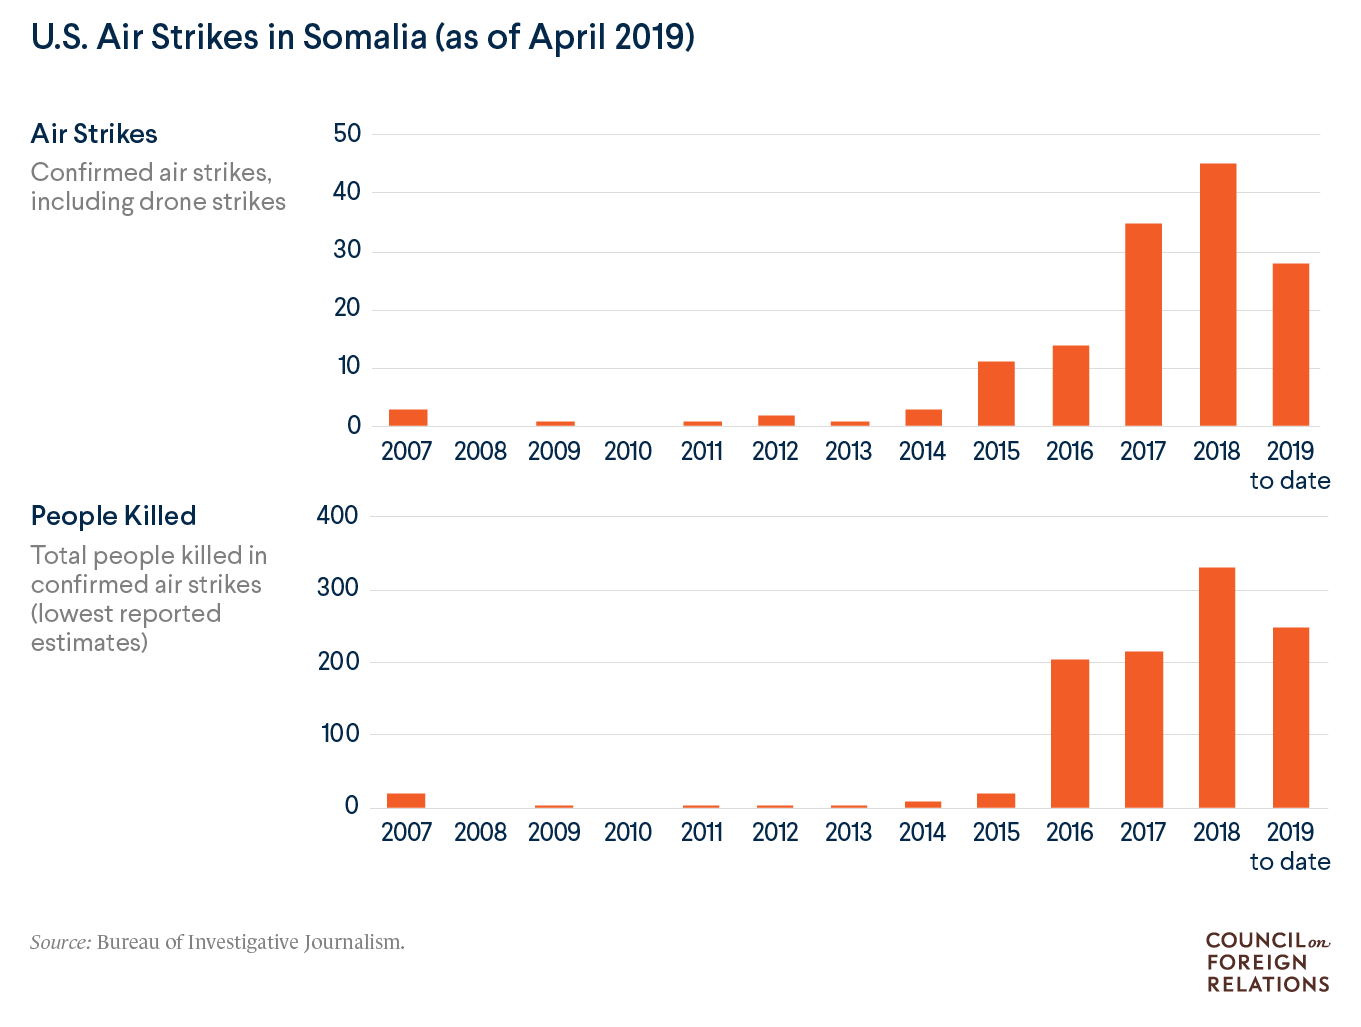 U.S. air strikes in Somalia